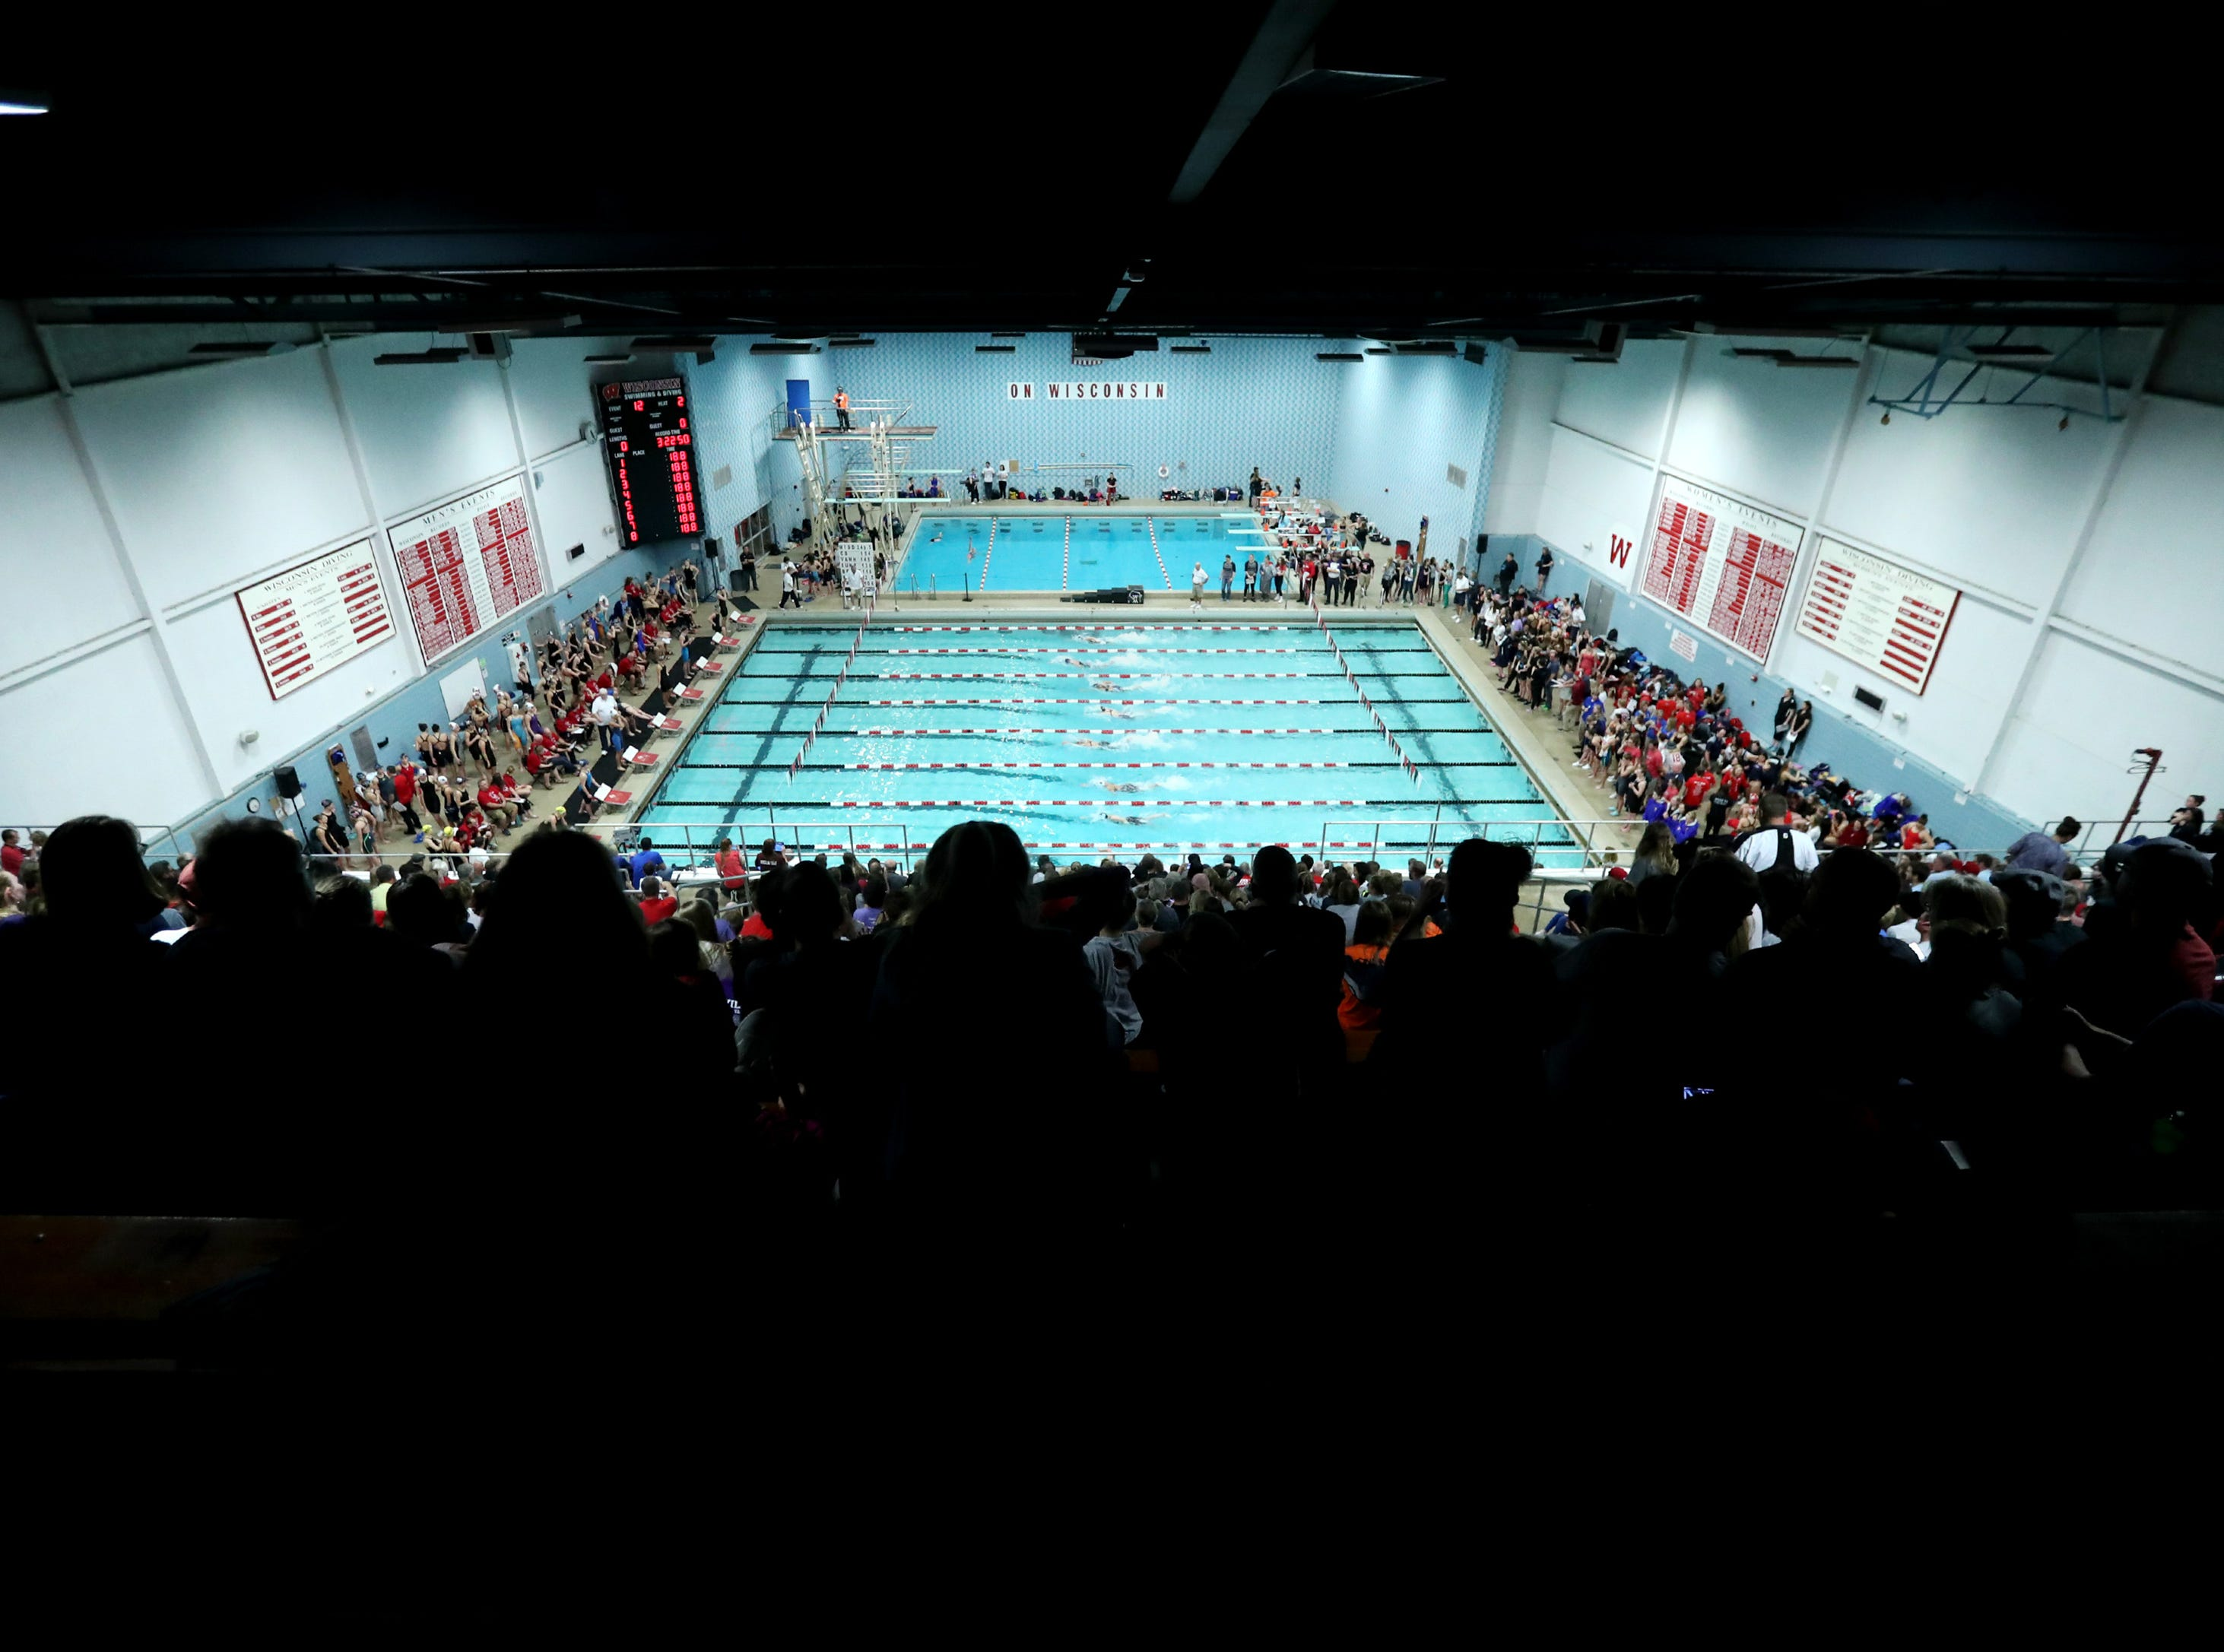 The crowd watches as racers compete in the 400 yard freestyle relay during the WIAA Division 1 State Swimming and Diving meet Saturday, Nov. 10, 2018, at the UW Natatorium in Madison, Wis. Danny Damiani/USA TODAY NETWORK-Wisconsin